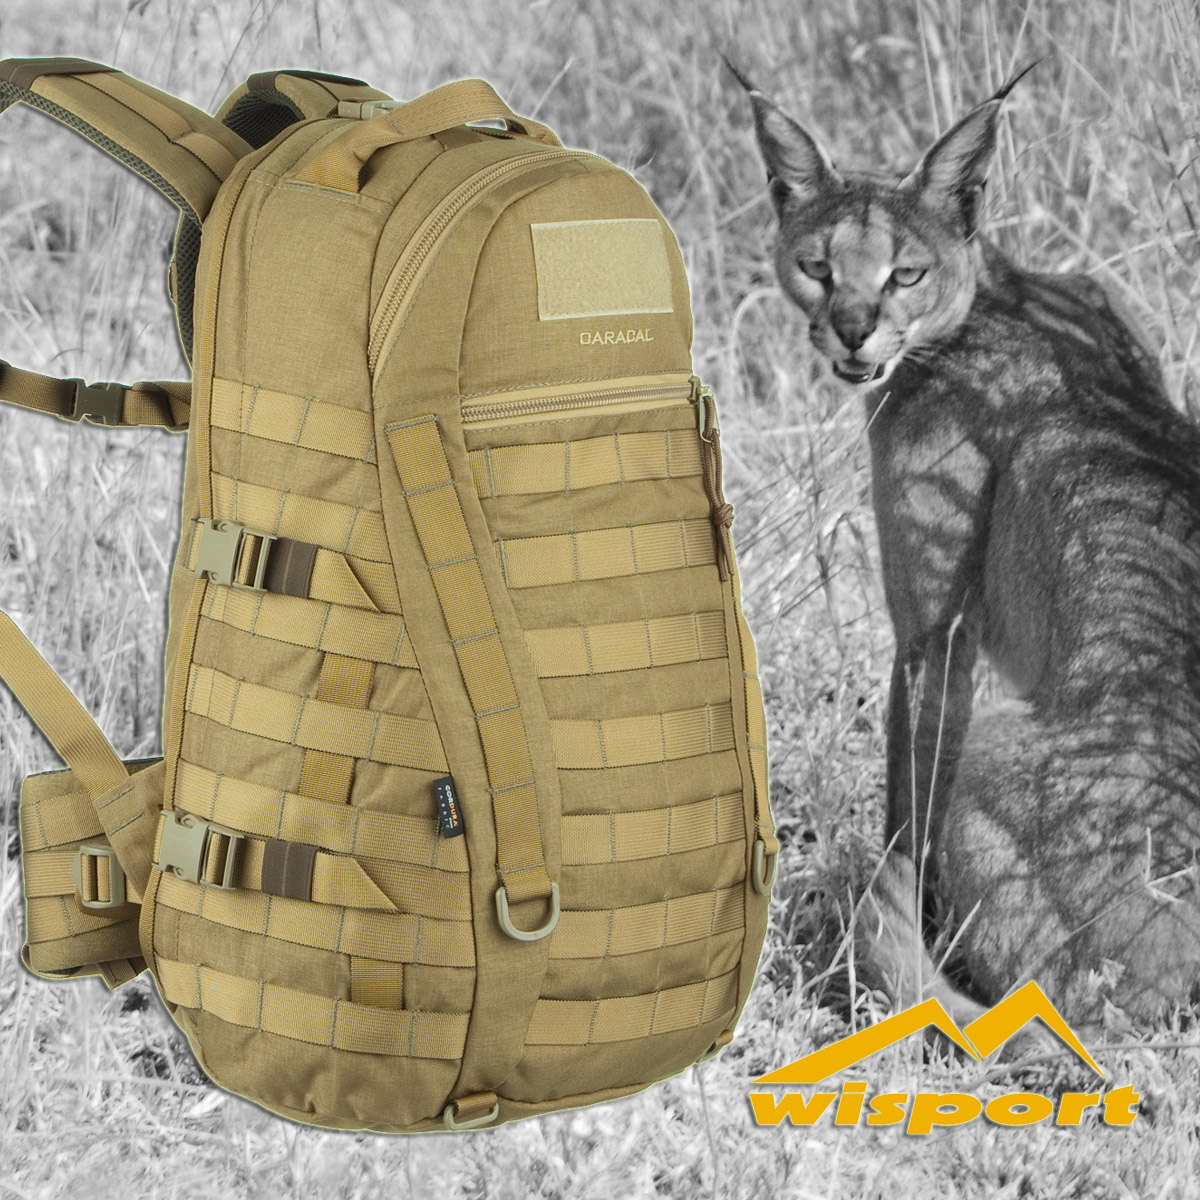 Caracal - new species of backpack at Military 1st